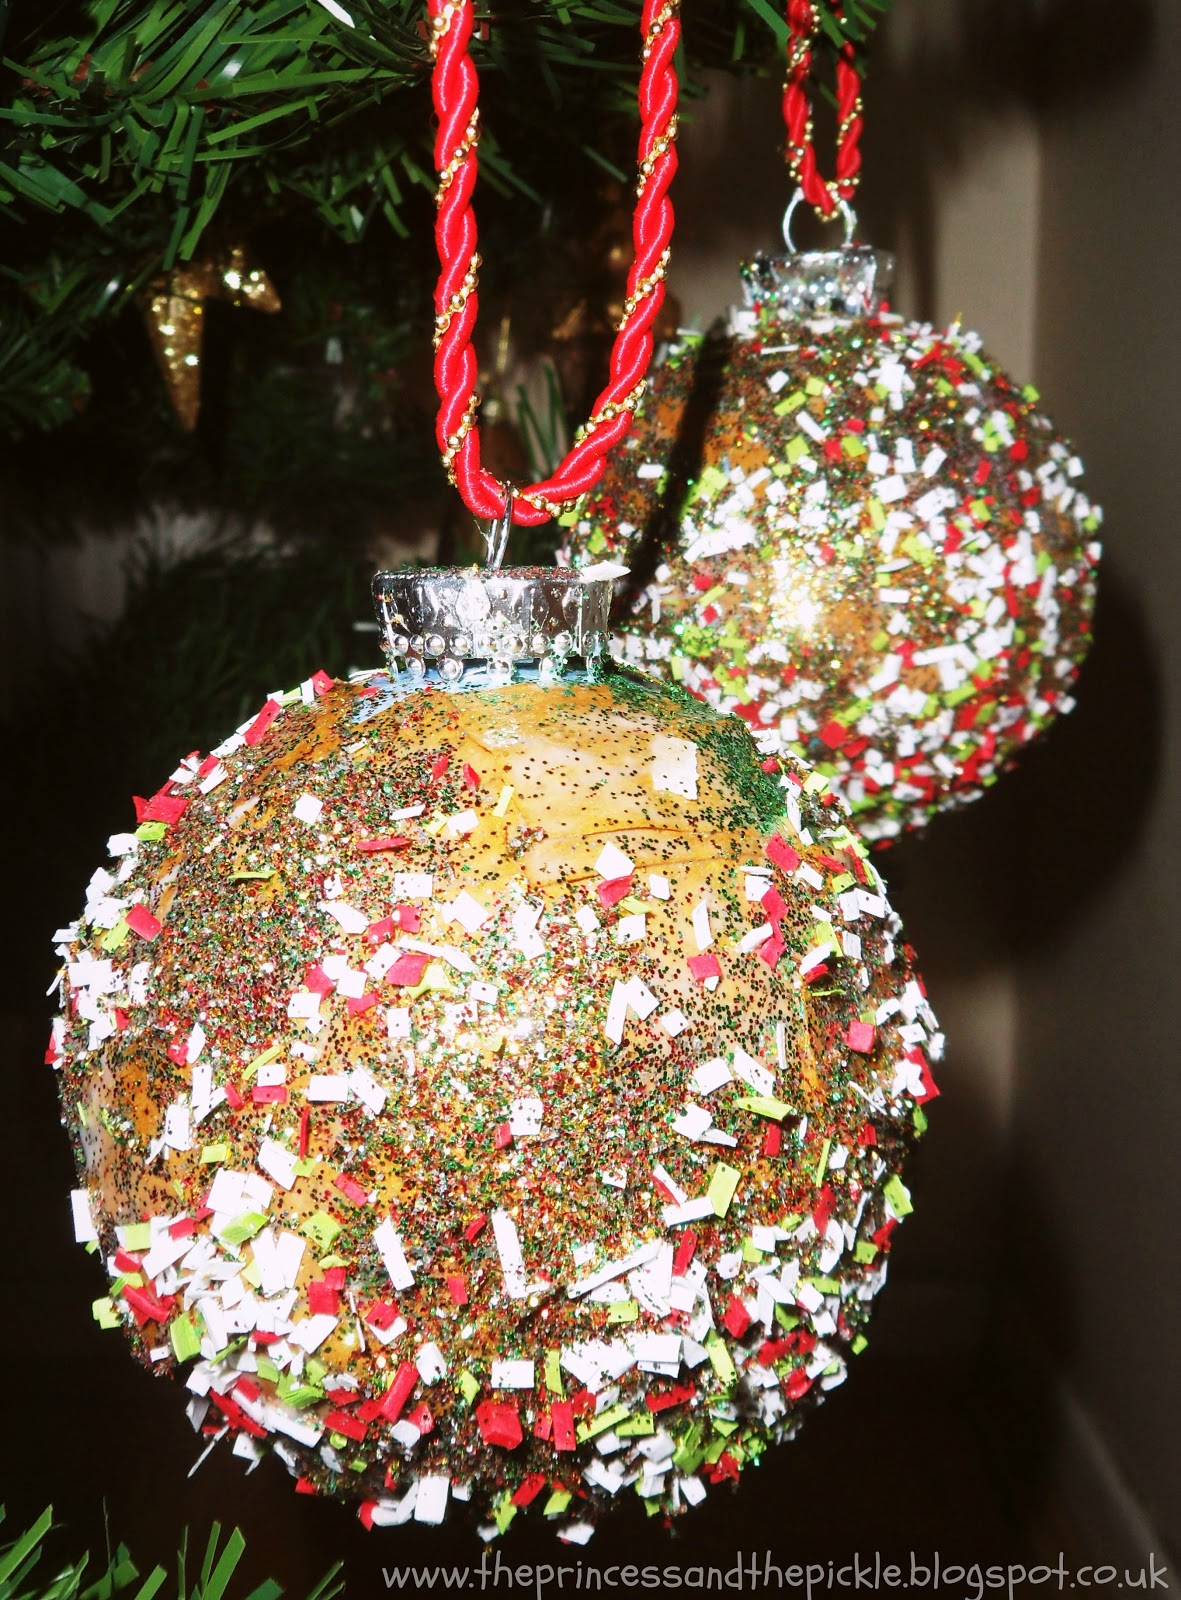 The princess and the pickle upcycled baubles fun for Christmas crafts for young children